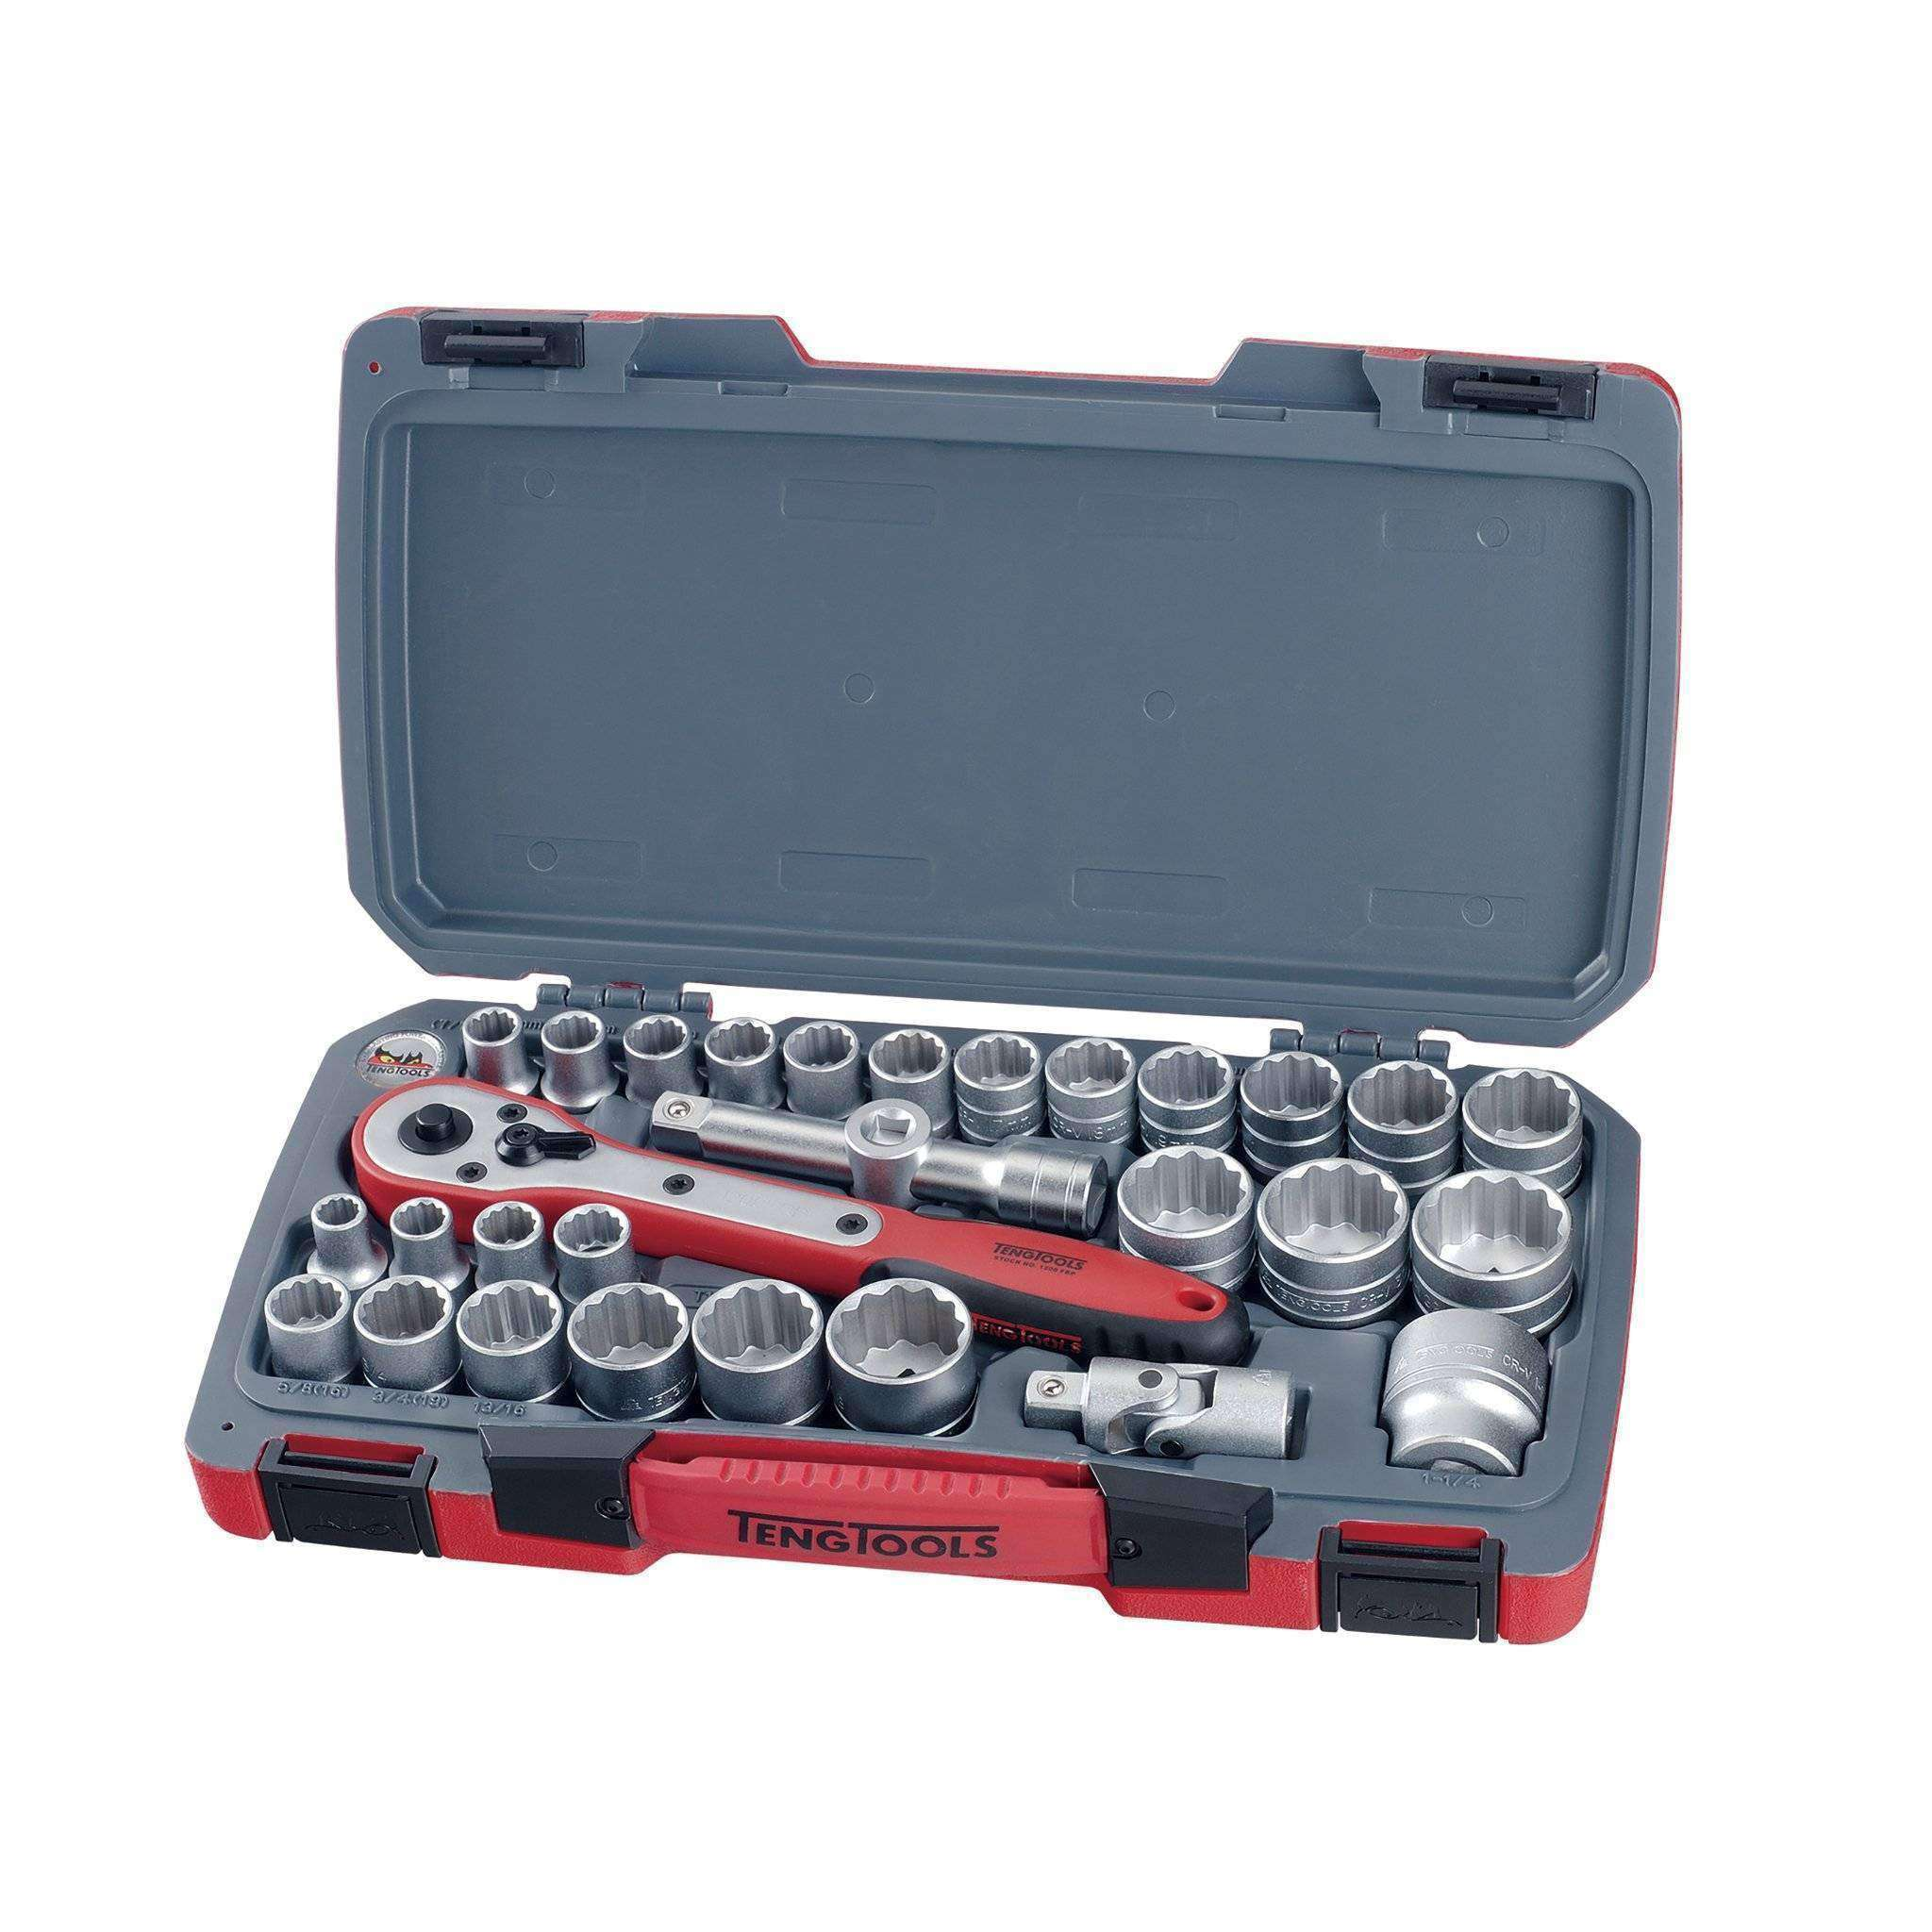 "Teng Tools - 30 Piece 1/2"" Drive 12 Point Metric and SAE Socket Set - TEN-O-T1230 - Teng Tools USA"